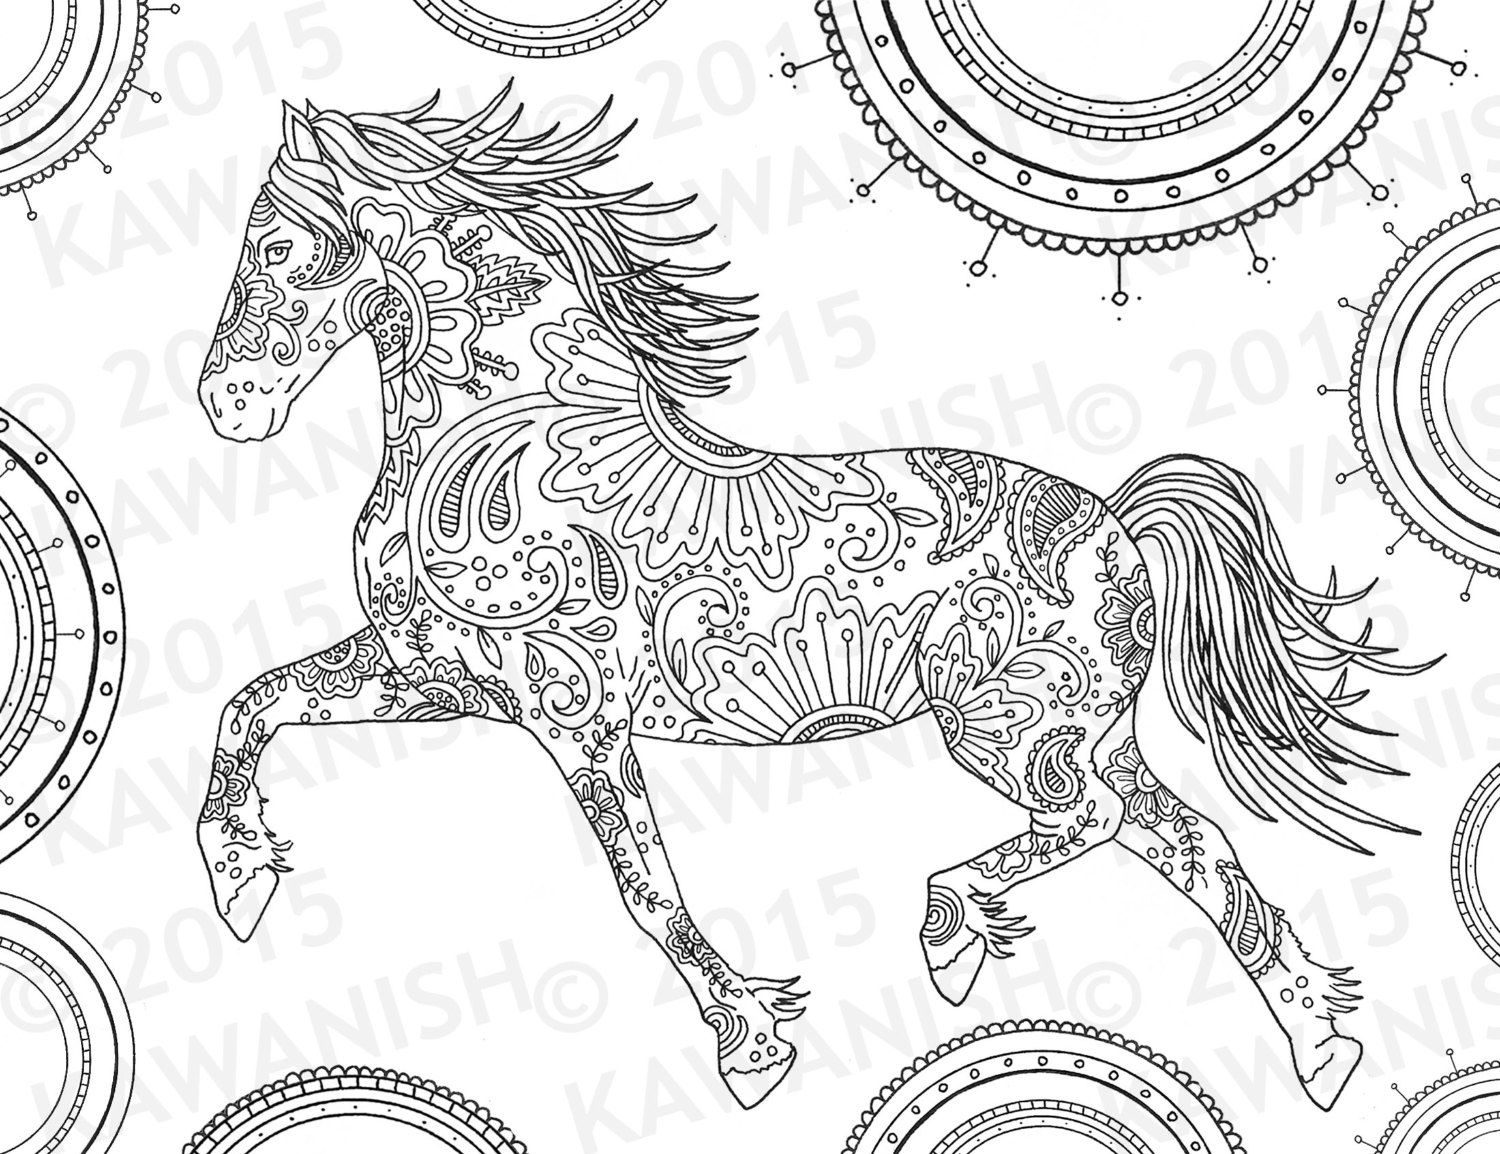 Stress relief coloring pages mandala - Horse Adult Coloring Page Gift Wall Art Mandala By Kawanish